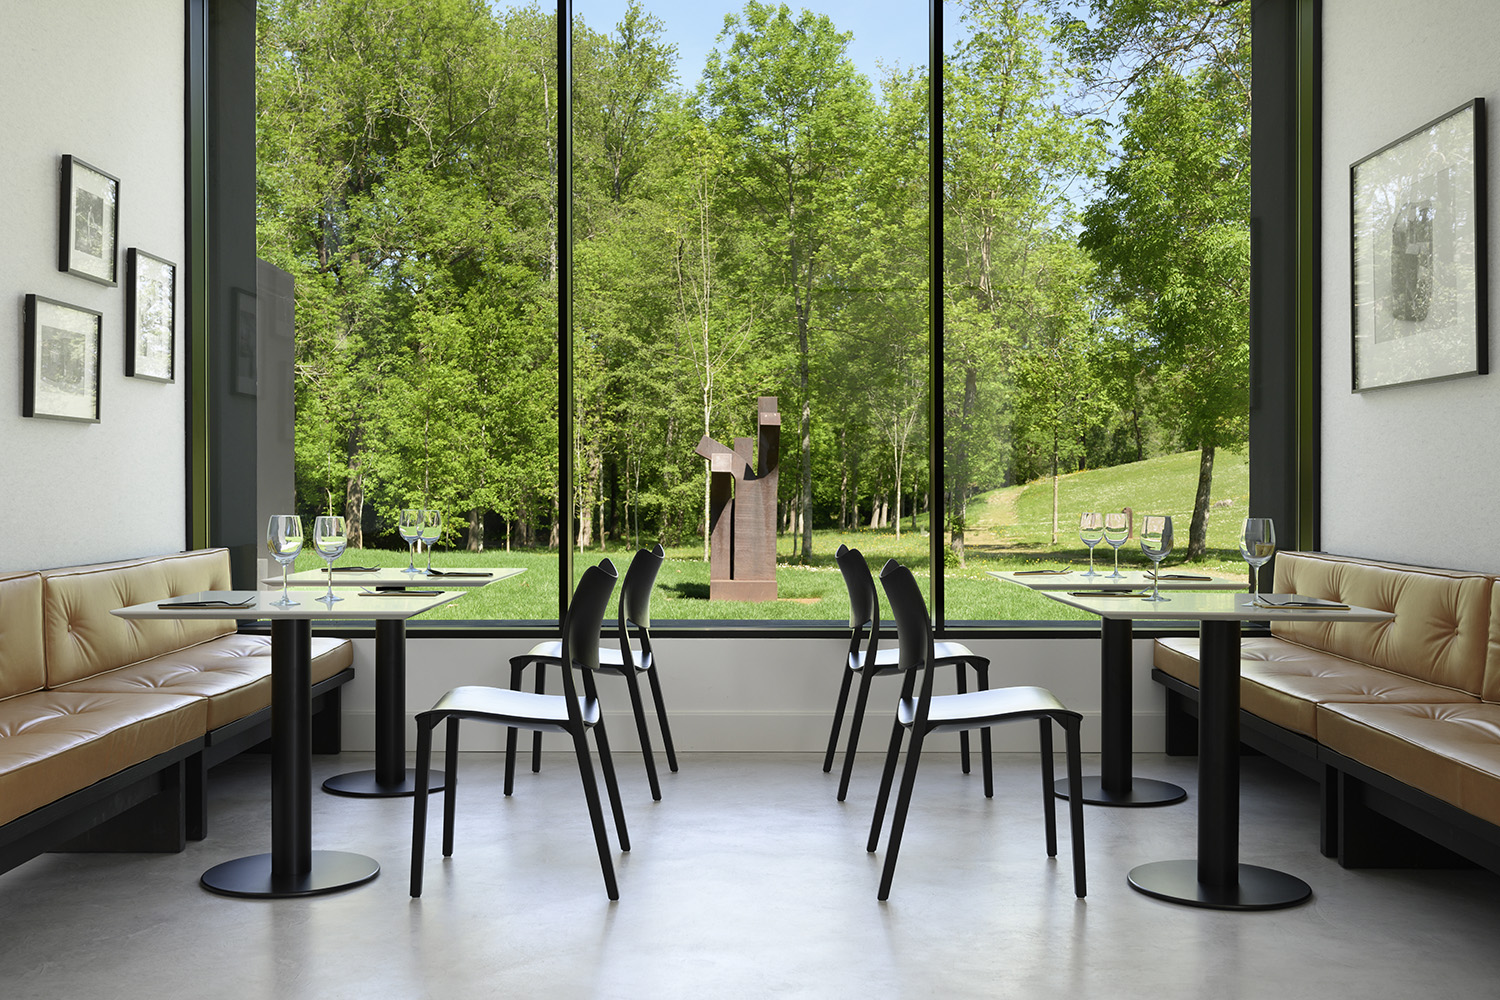 Design Chairs And Tables For Restaurants By Stua